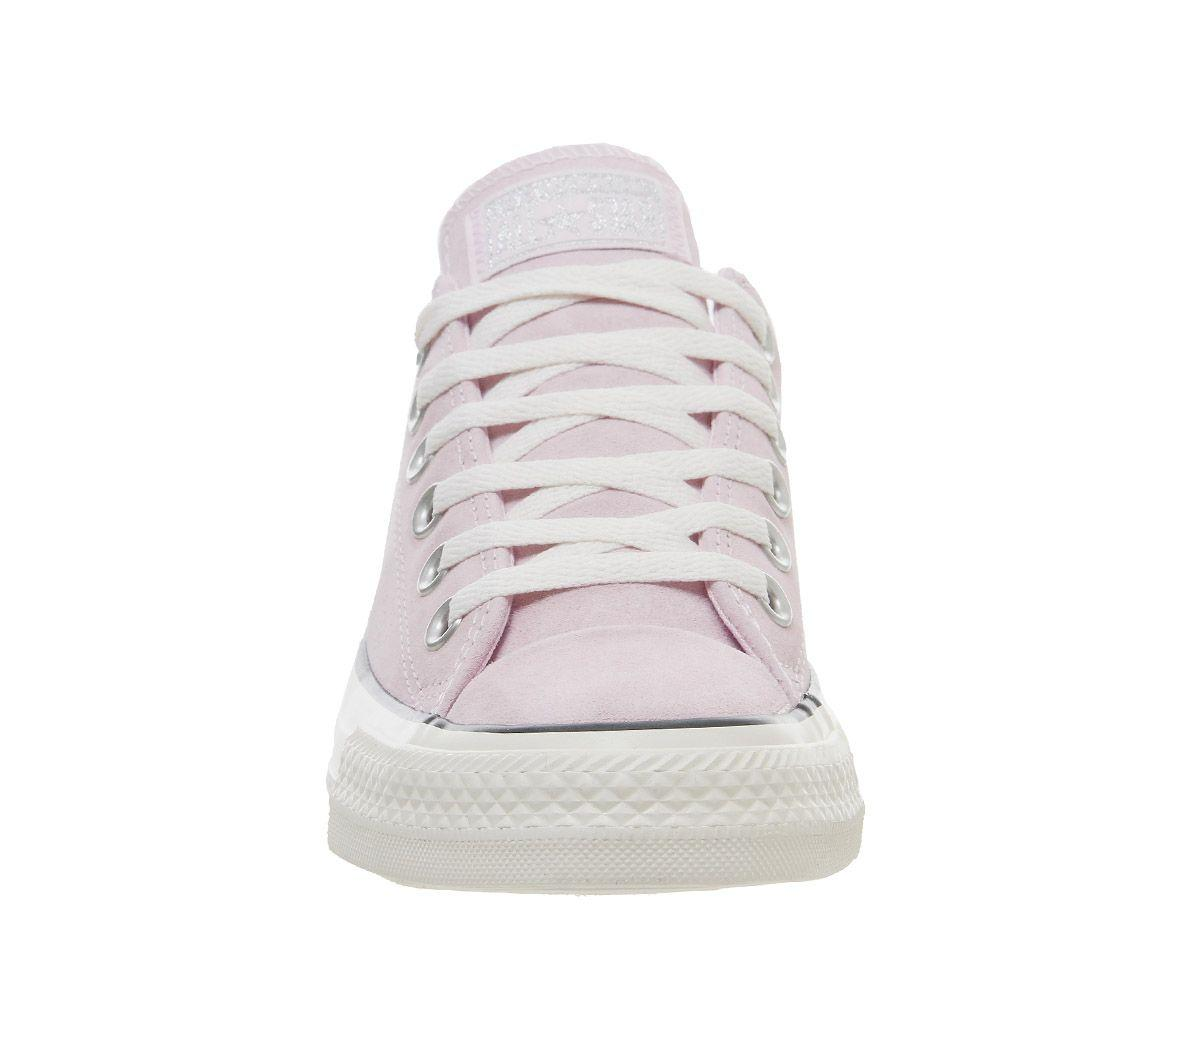 3f70e6b3856cf7 Converse - Pink Allstar Low Leather Trainers - Lyst. View fullscreen